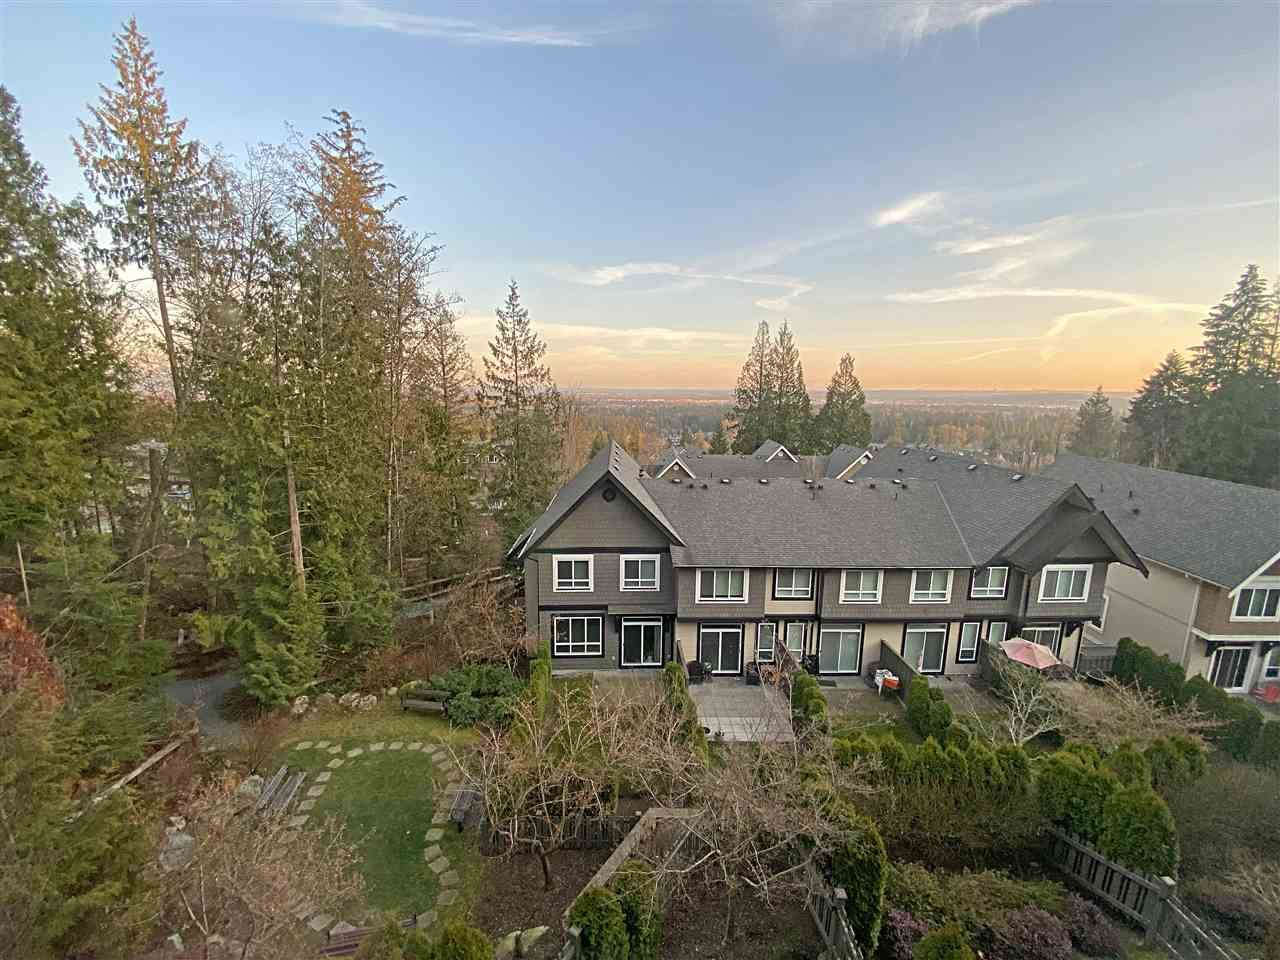 """Main Photo: 59 1305 SOBALL Street in Coquitlam: Burke Mountain Townhouse for sale in """"Tyneridge"""" : MLS®# R2447505"""